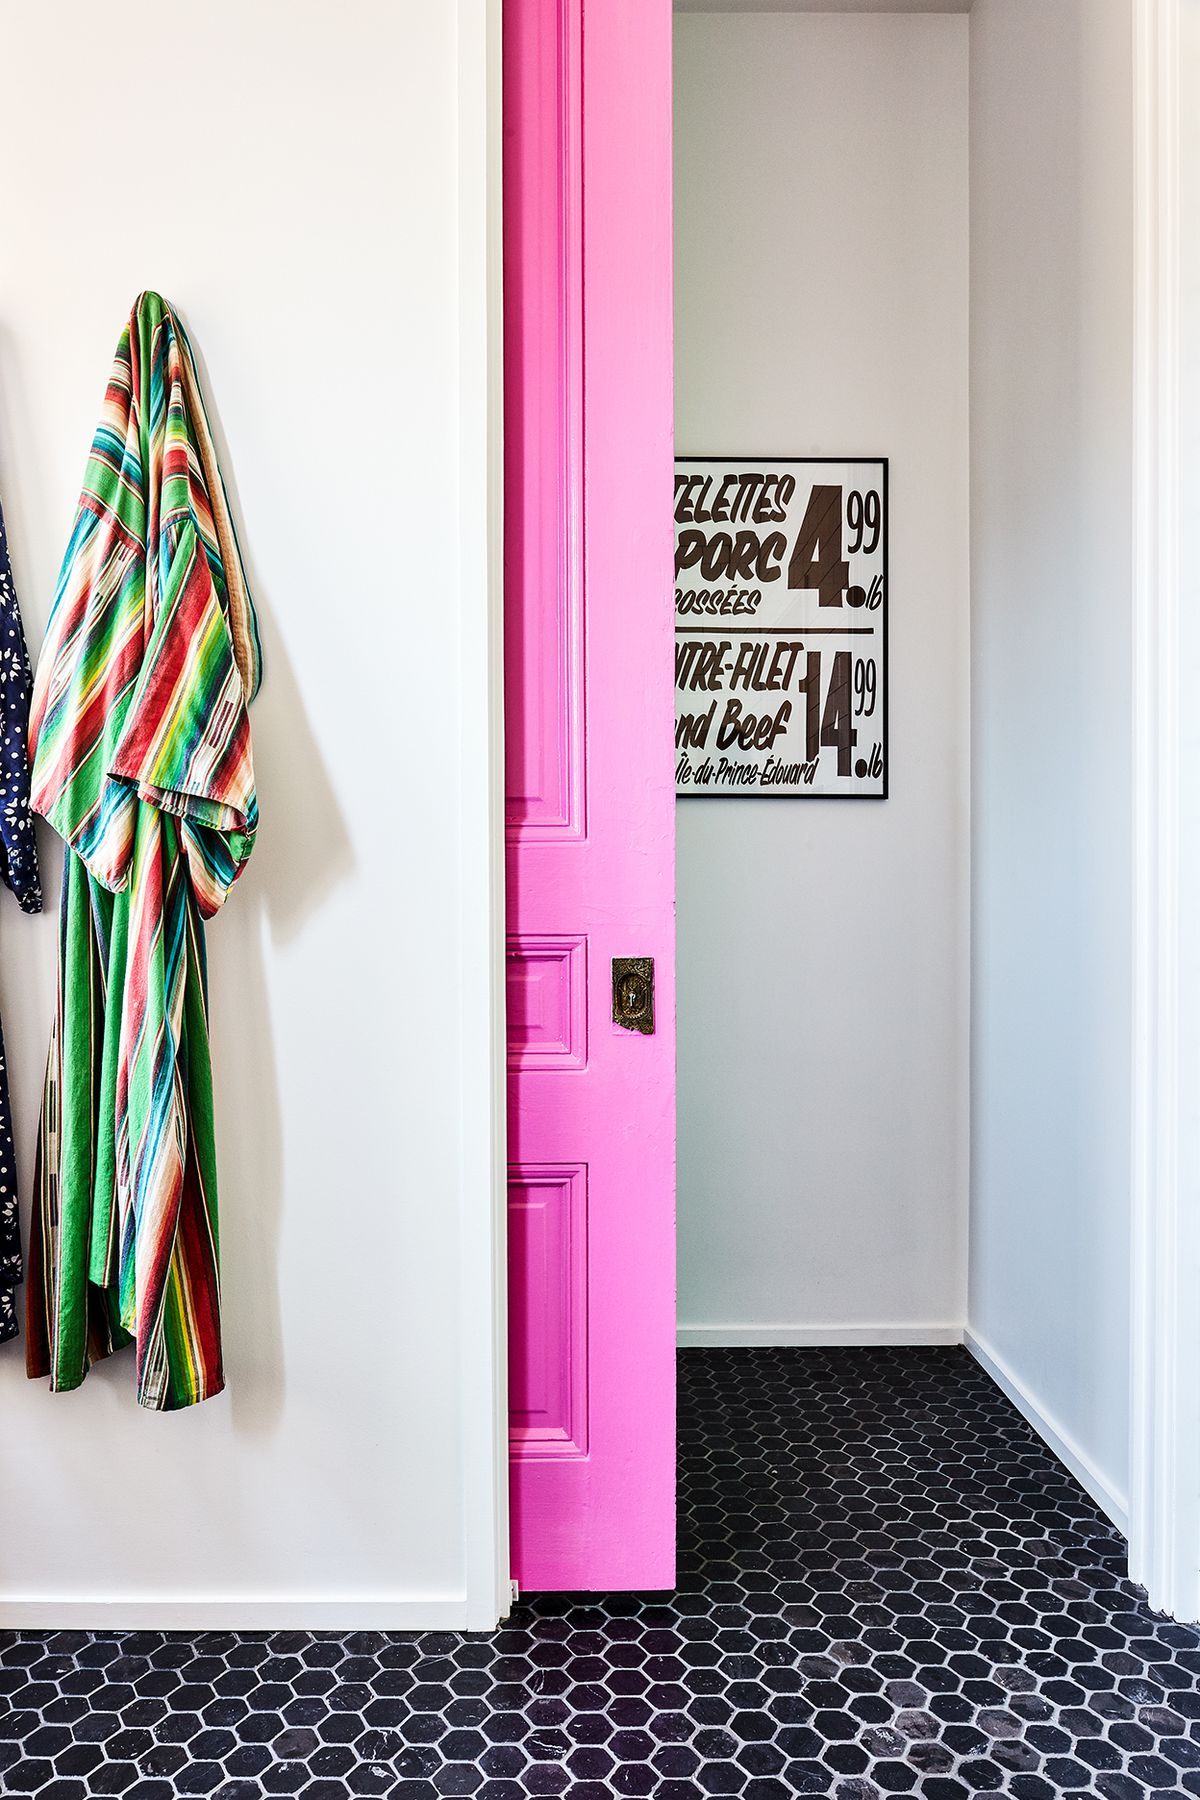 The doorway to a bathroom. The door is bright pink. There is a striped colorful robe hanging on the wall. The floor is tiled in black and white tiles.